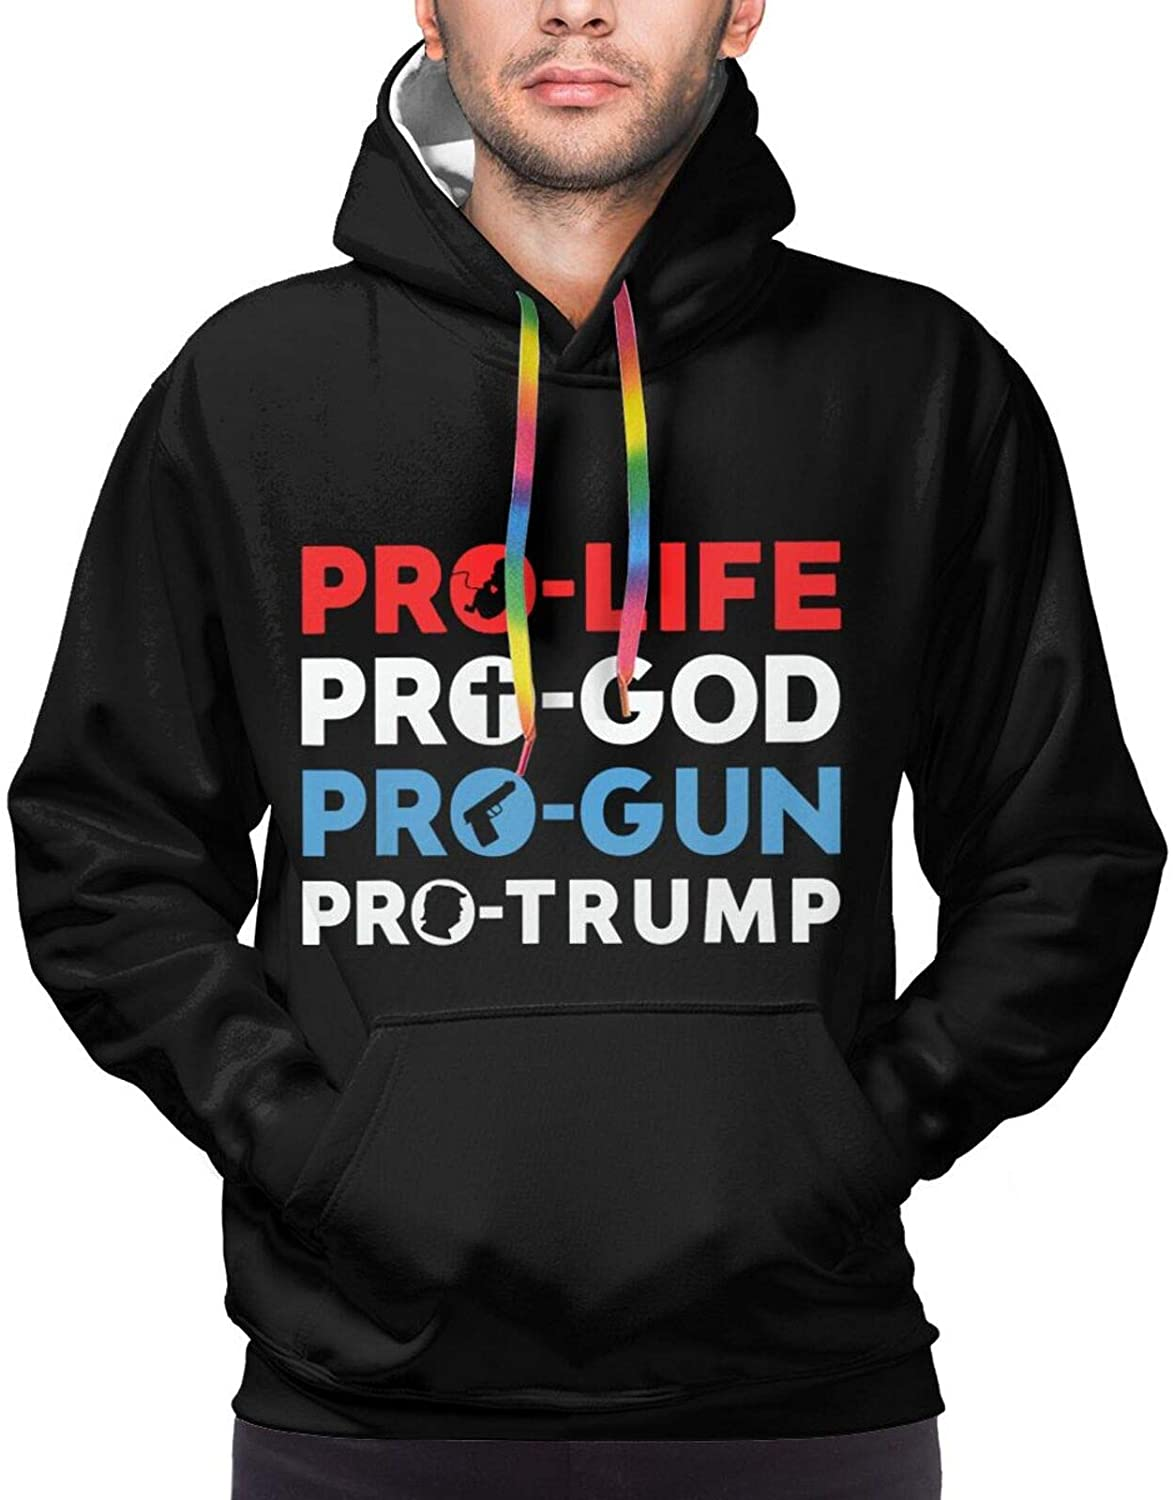 Trump 2020 Pro Life Pro God Pro Gun Men's Personalized Pullover 3D Hooded Sweatshirt Warm Pocket Hoody